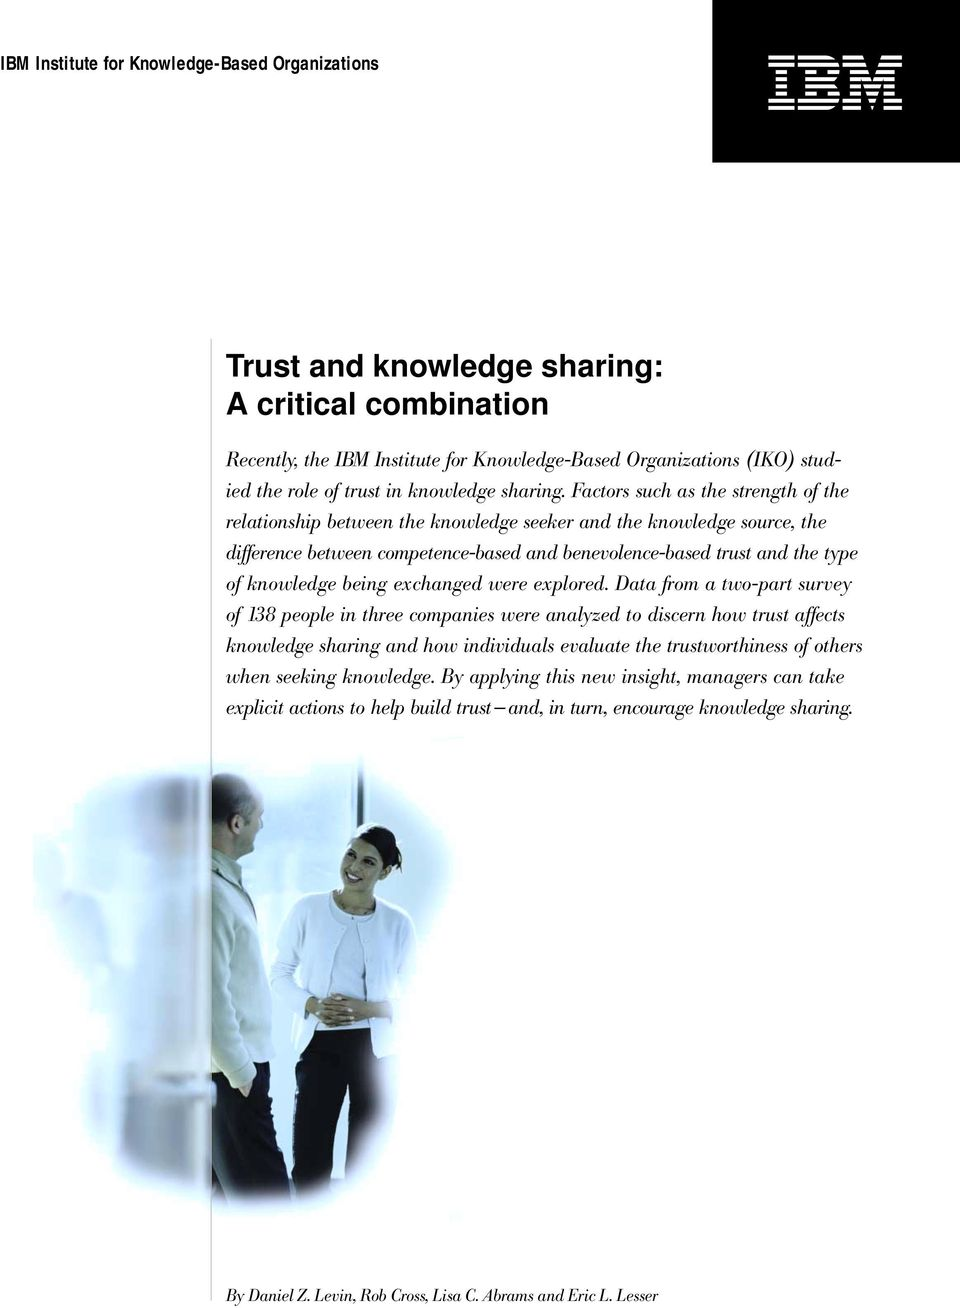 Factors such as the strength of the relationship between the knowledge seeker and the knowledge source, the difference between competence-based and benevolence-based trust and the type of knowledge